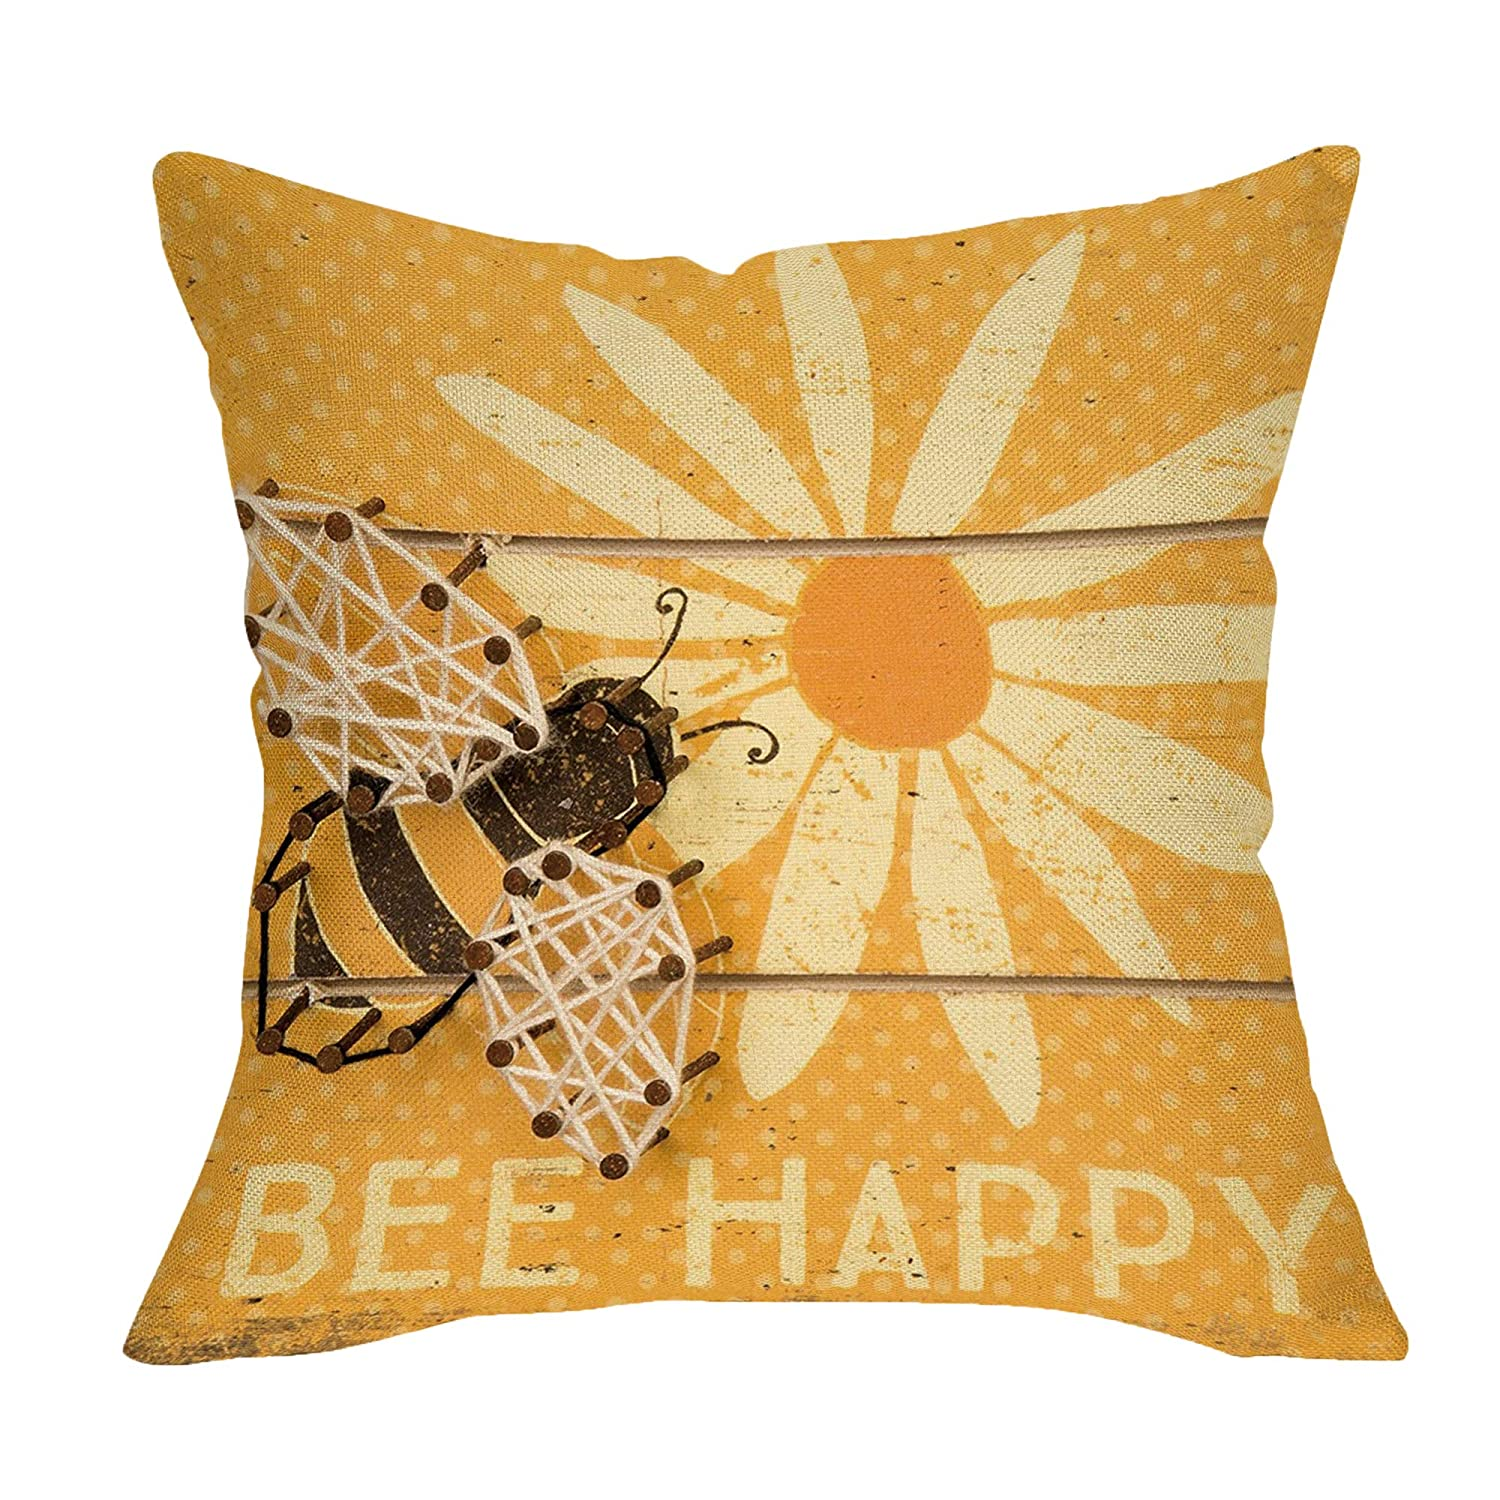 "Softxpp Rustic Bee Happy Sunflower Pillow Cover Farmhouse Décor Spring Summer Sign Cushion Case Decorative for Sofa Couch 18"" x 18"" Inch Cotton Linen"